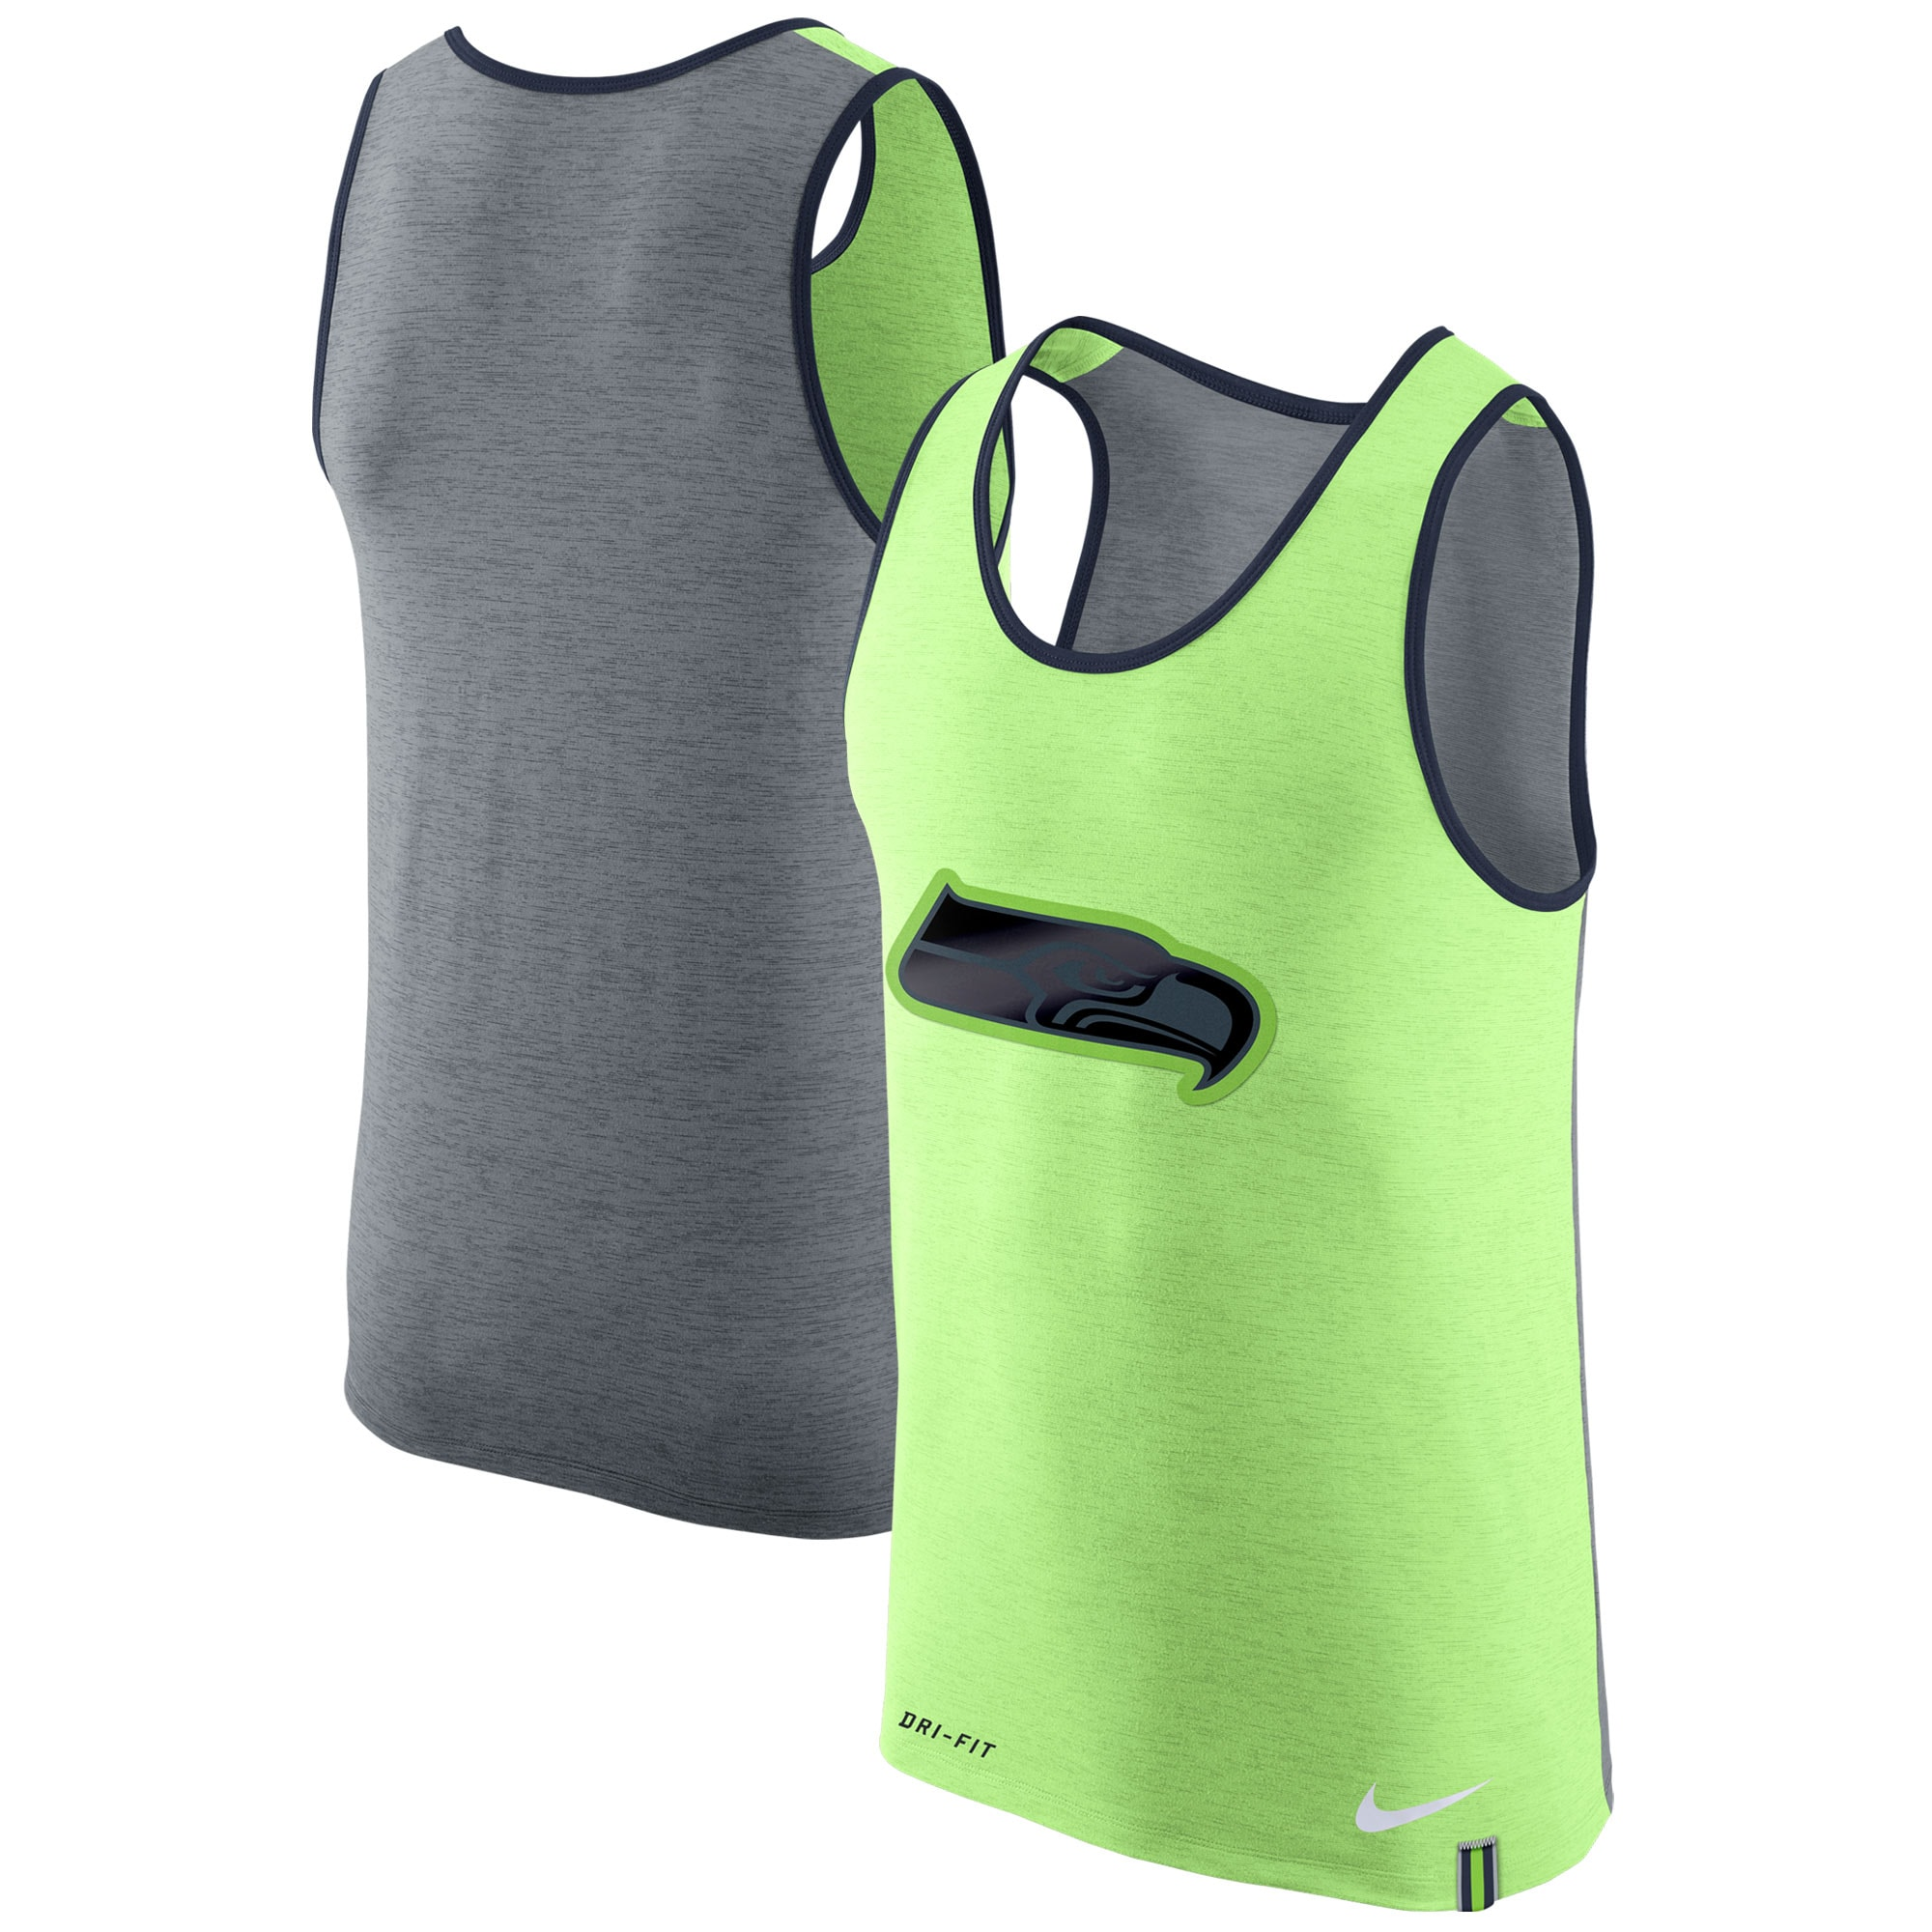 Seattle Seahawks Nike Colorblock Performance Tank Top - Neon Green/Heathered Gray